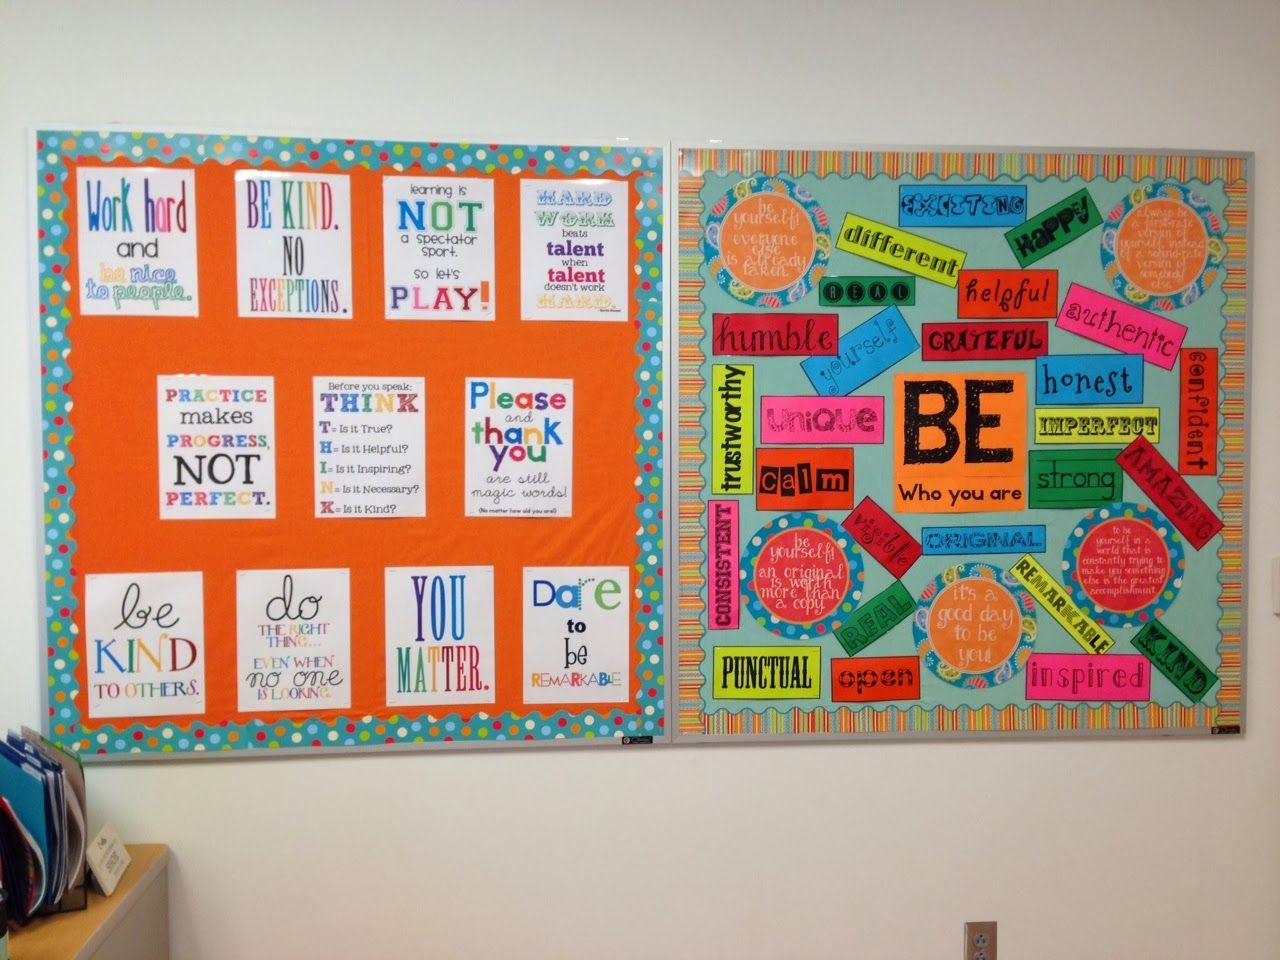 Bulletin board ideas for principals office google search for Inspirational quotes for office notice board